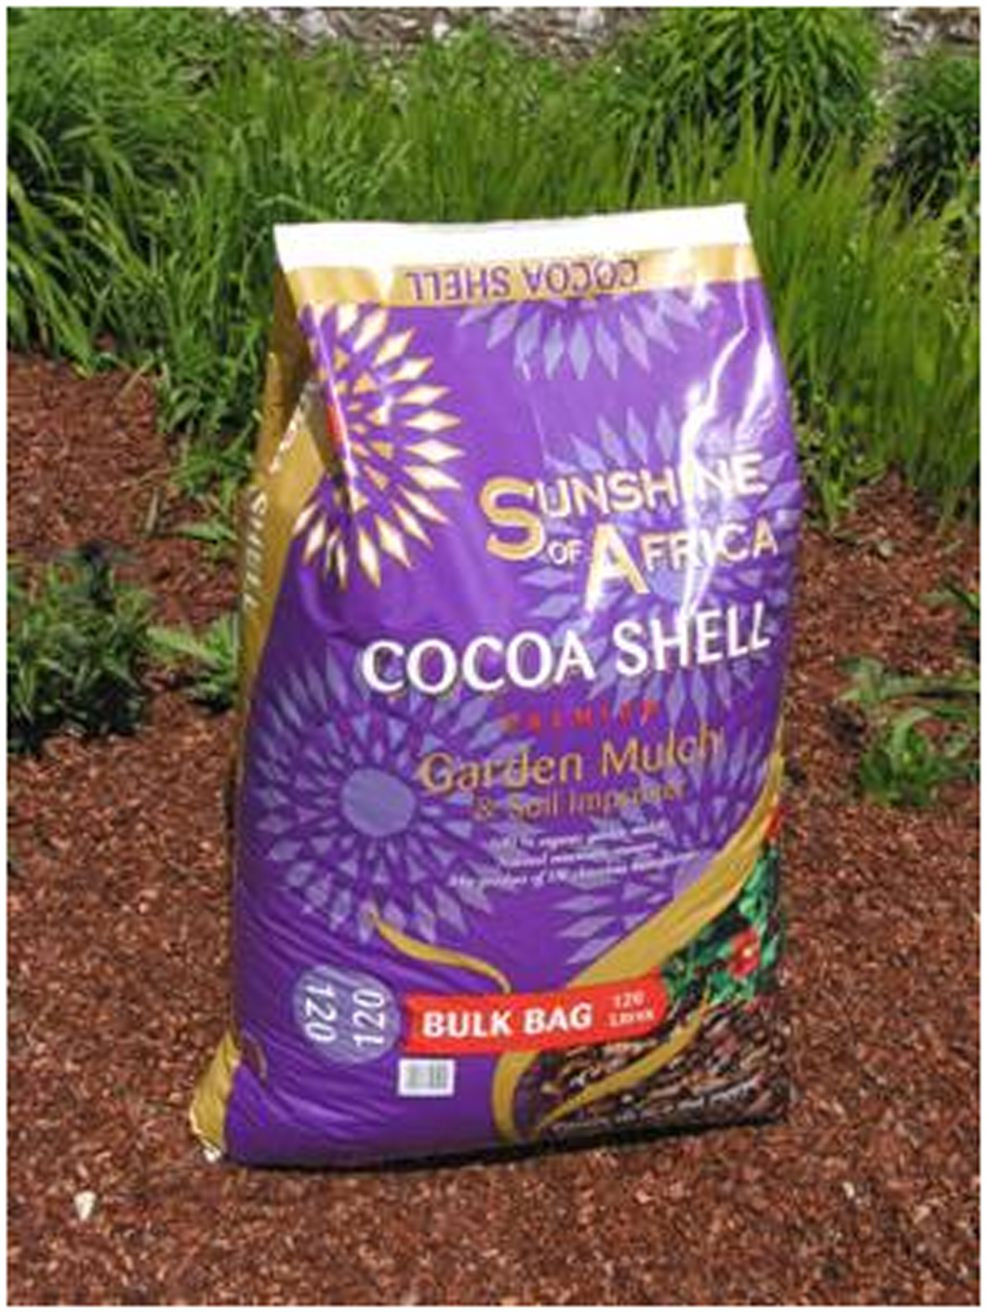 Cocoa Shell Mulch A By Product Of The Chocolate Industry Is Perfect For Suppressing Weeds Retaining Moisture And Protecting Ground From Frost